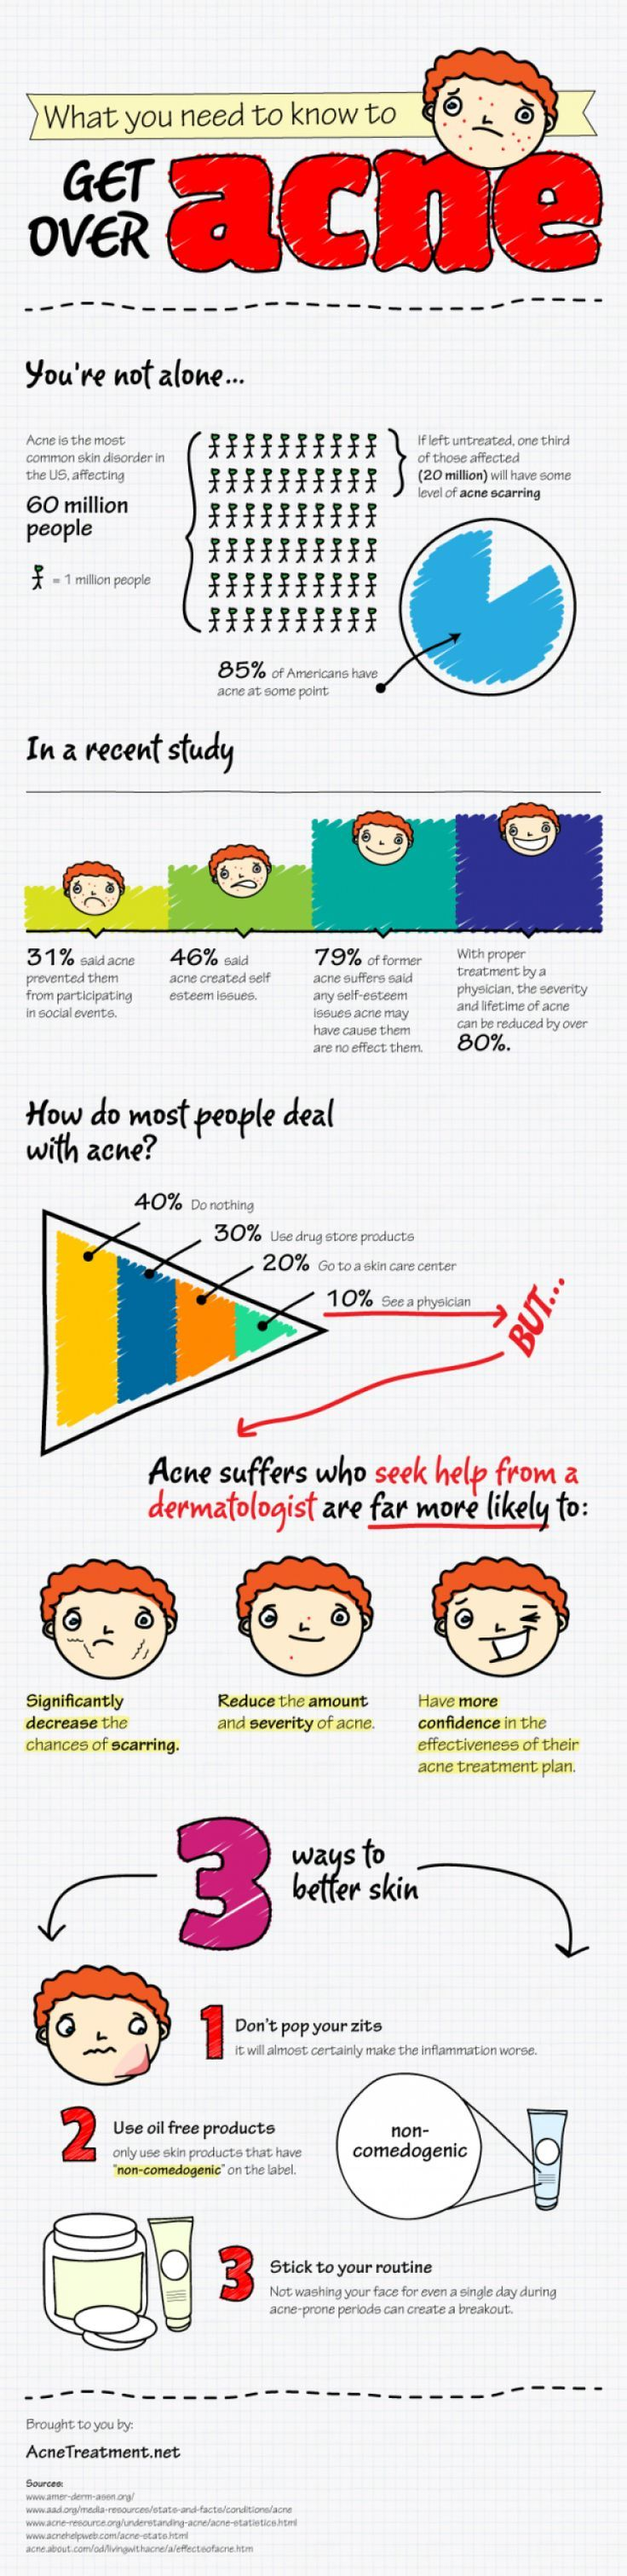 Acne Informative article about Getting Over Acne Infographic......